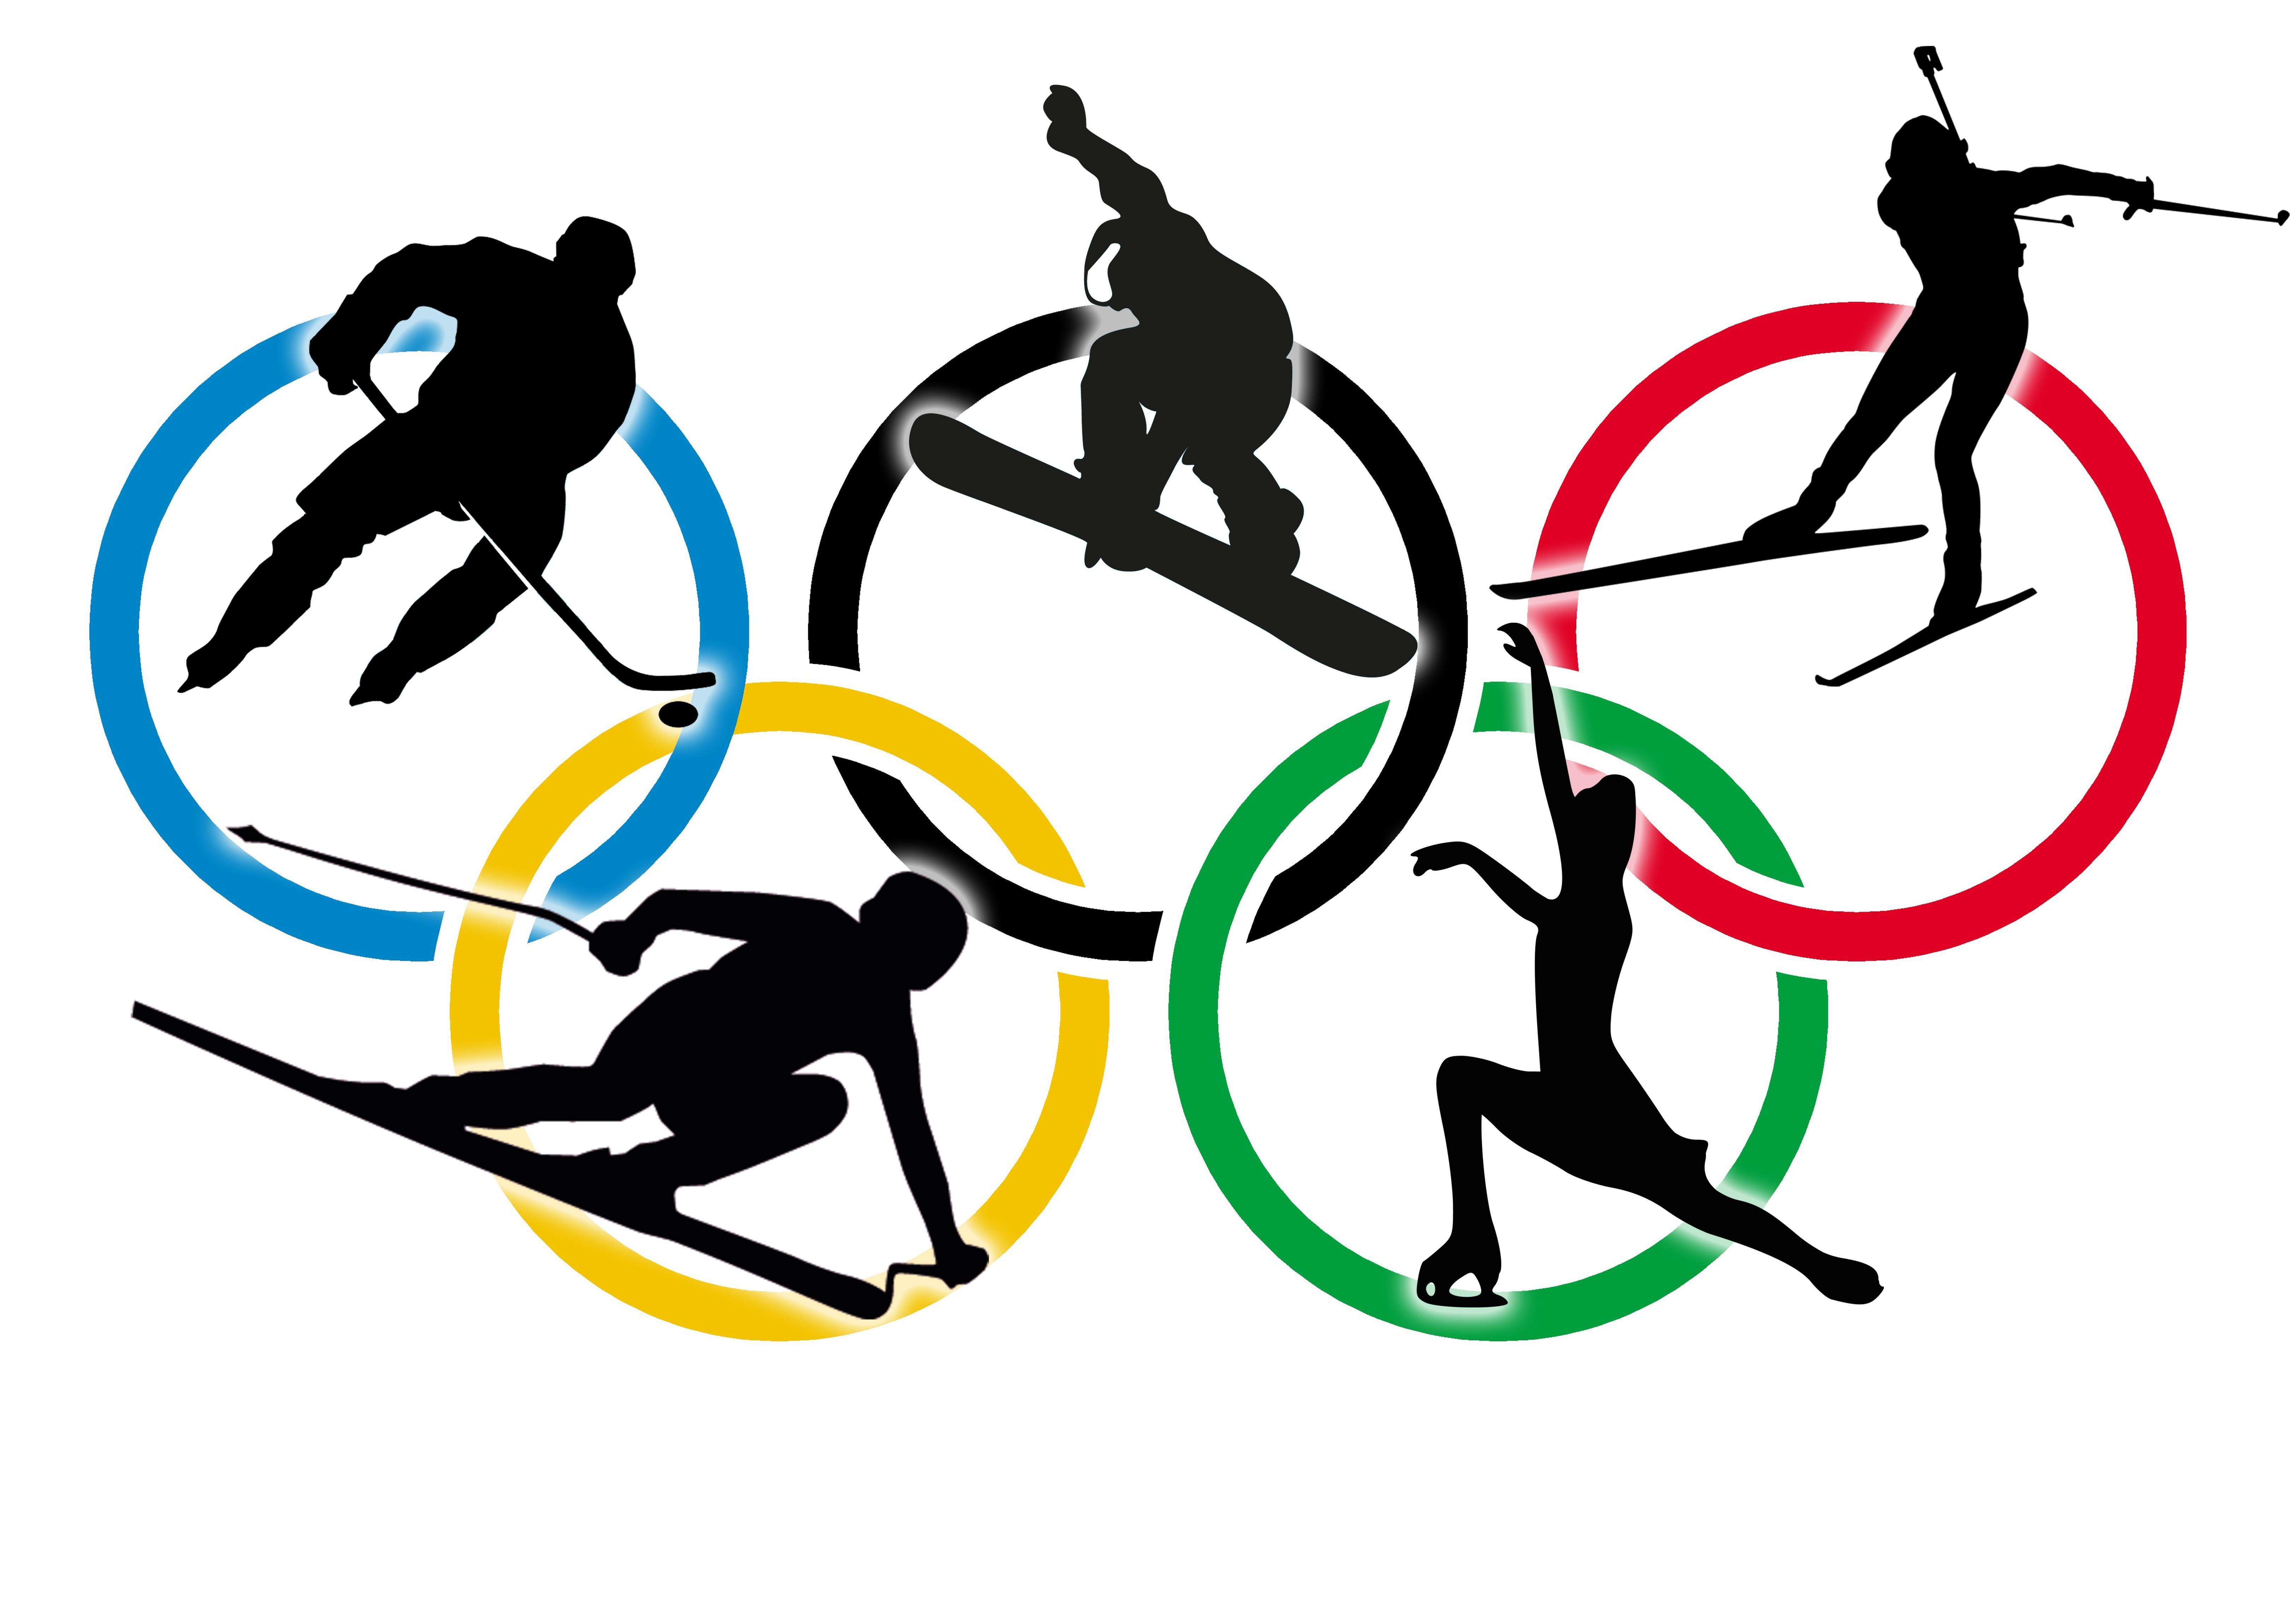 Graphic of 5 Olympic rings, with shadow figures of athletes in each: hockey, snowboarding, ski jumping, downhill skiing, and figure skating